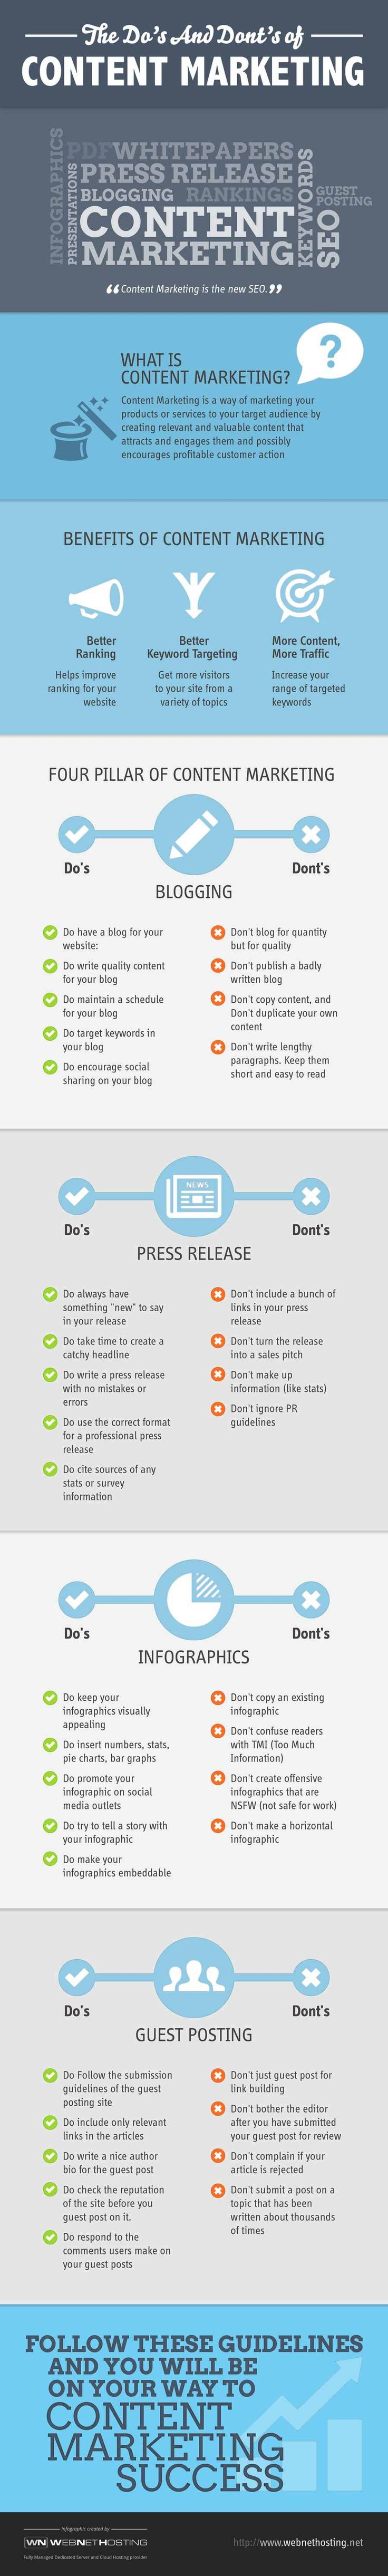 The Dos and Dont's of Content Marketing Infographic